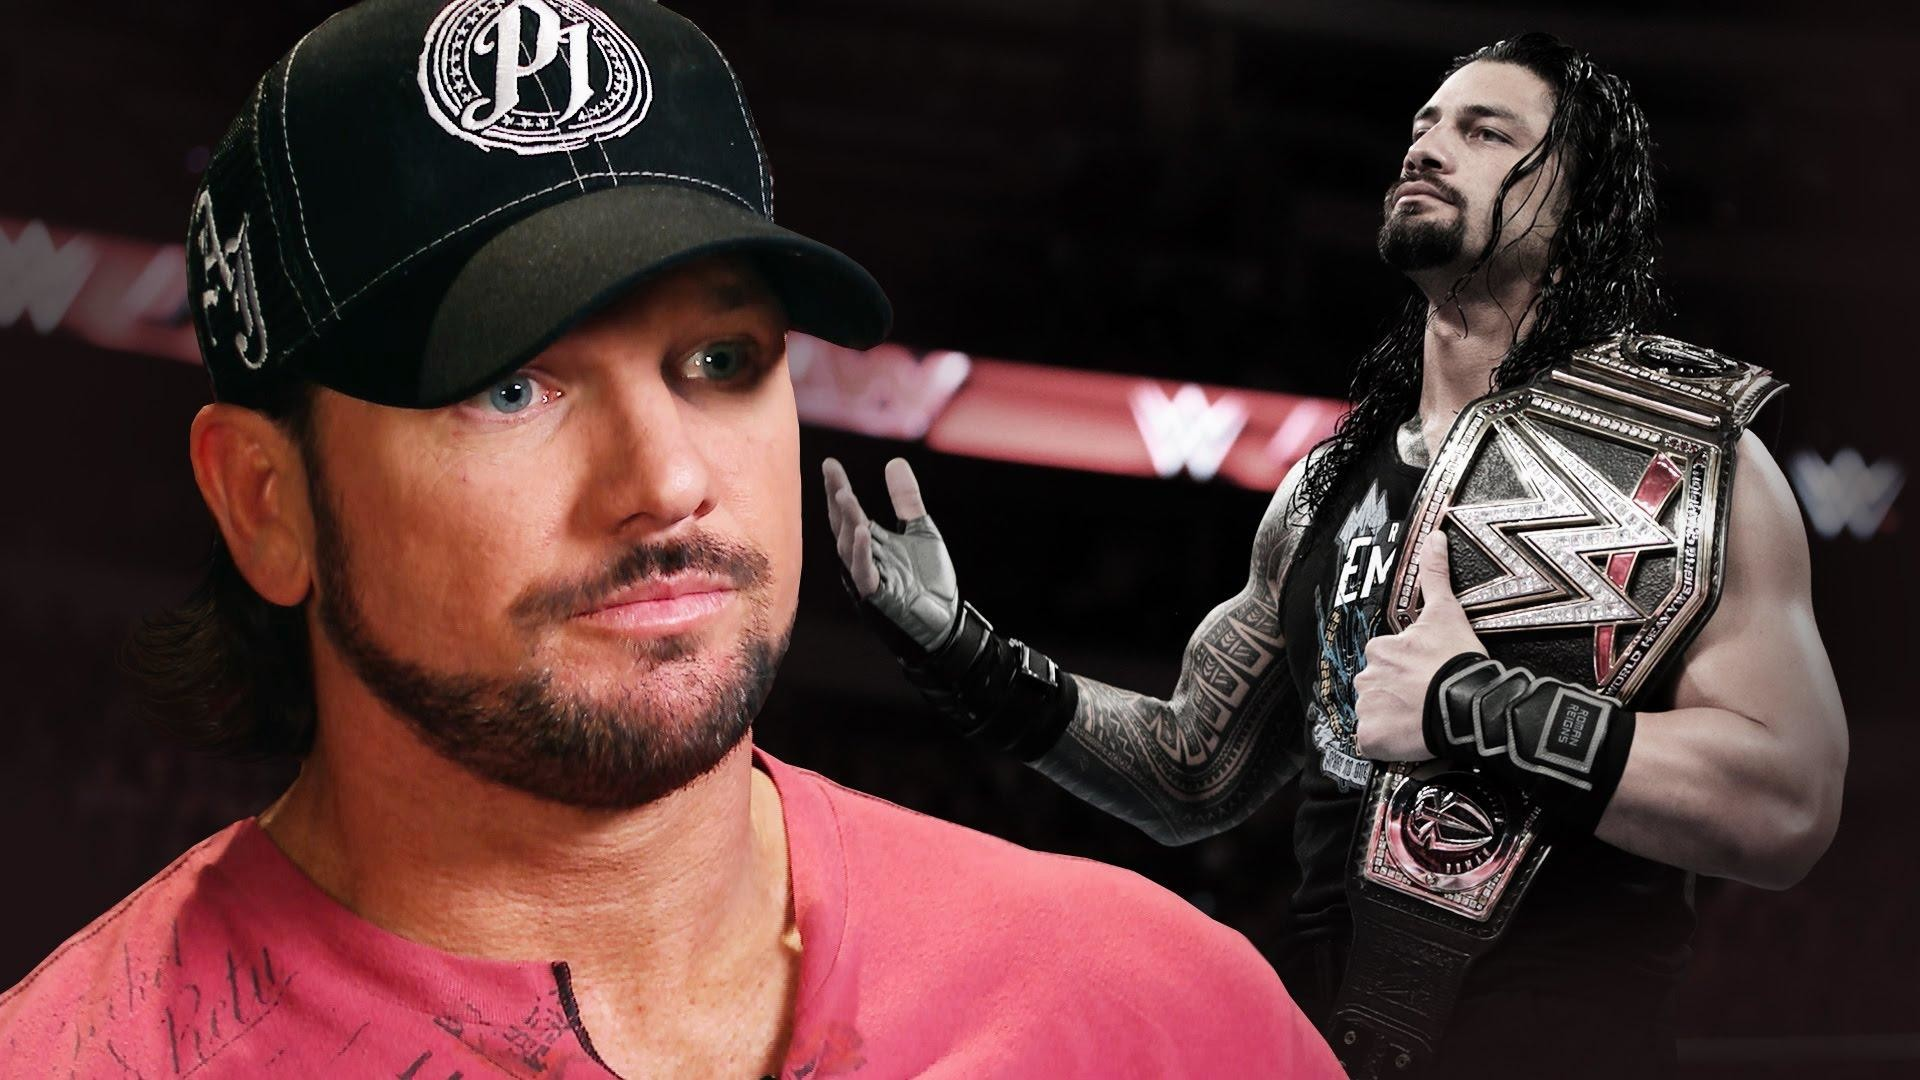 1920x1080 wallpaper.wiki-AJ-Styles-VS-Roman-Reigns-Wallpapers-HD-Pictures -PIC-WPC0013886